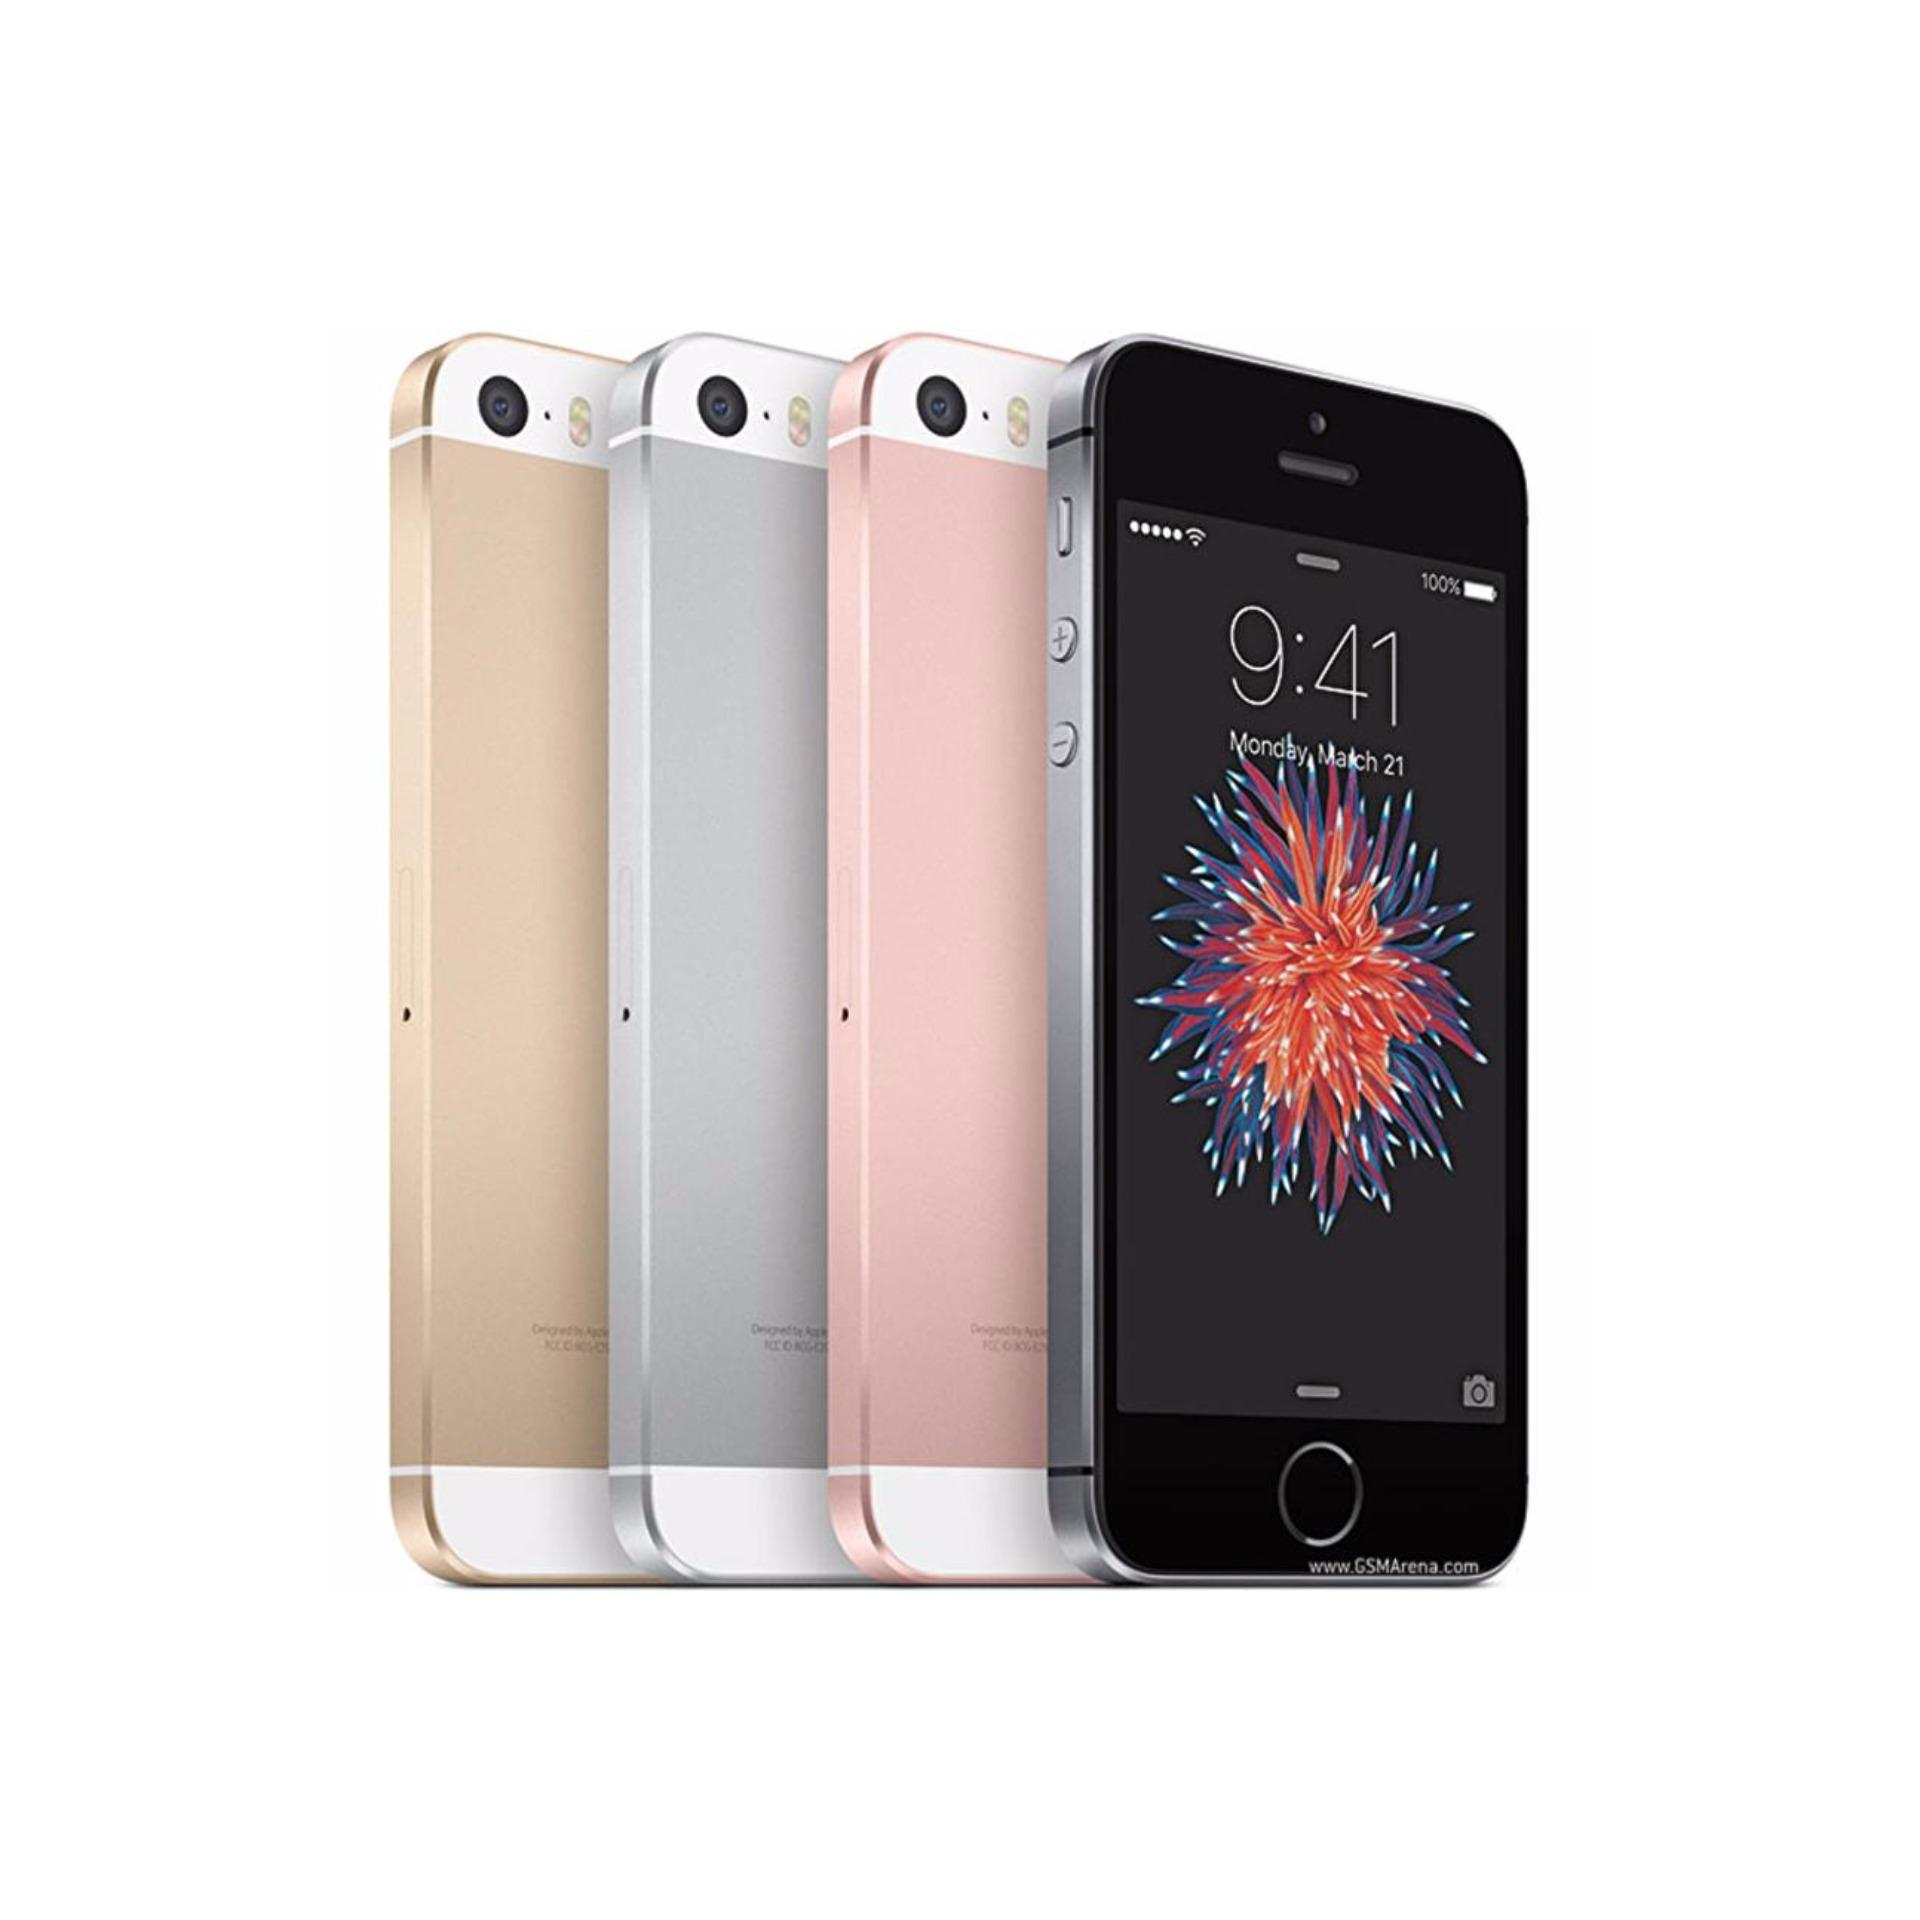 NEW !! iPhone SE 32GB (ROSE) - Garansi Resmi Apple 1 tahun - BEST DEAL